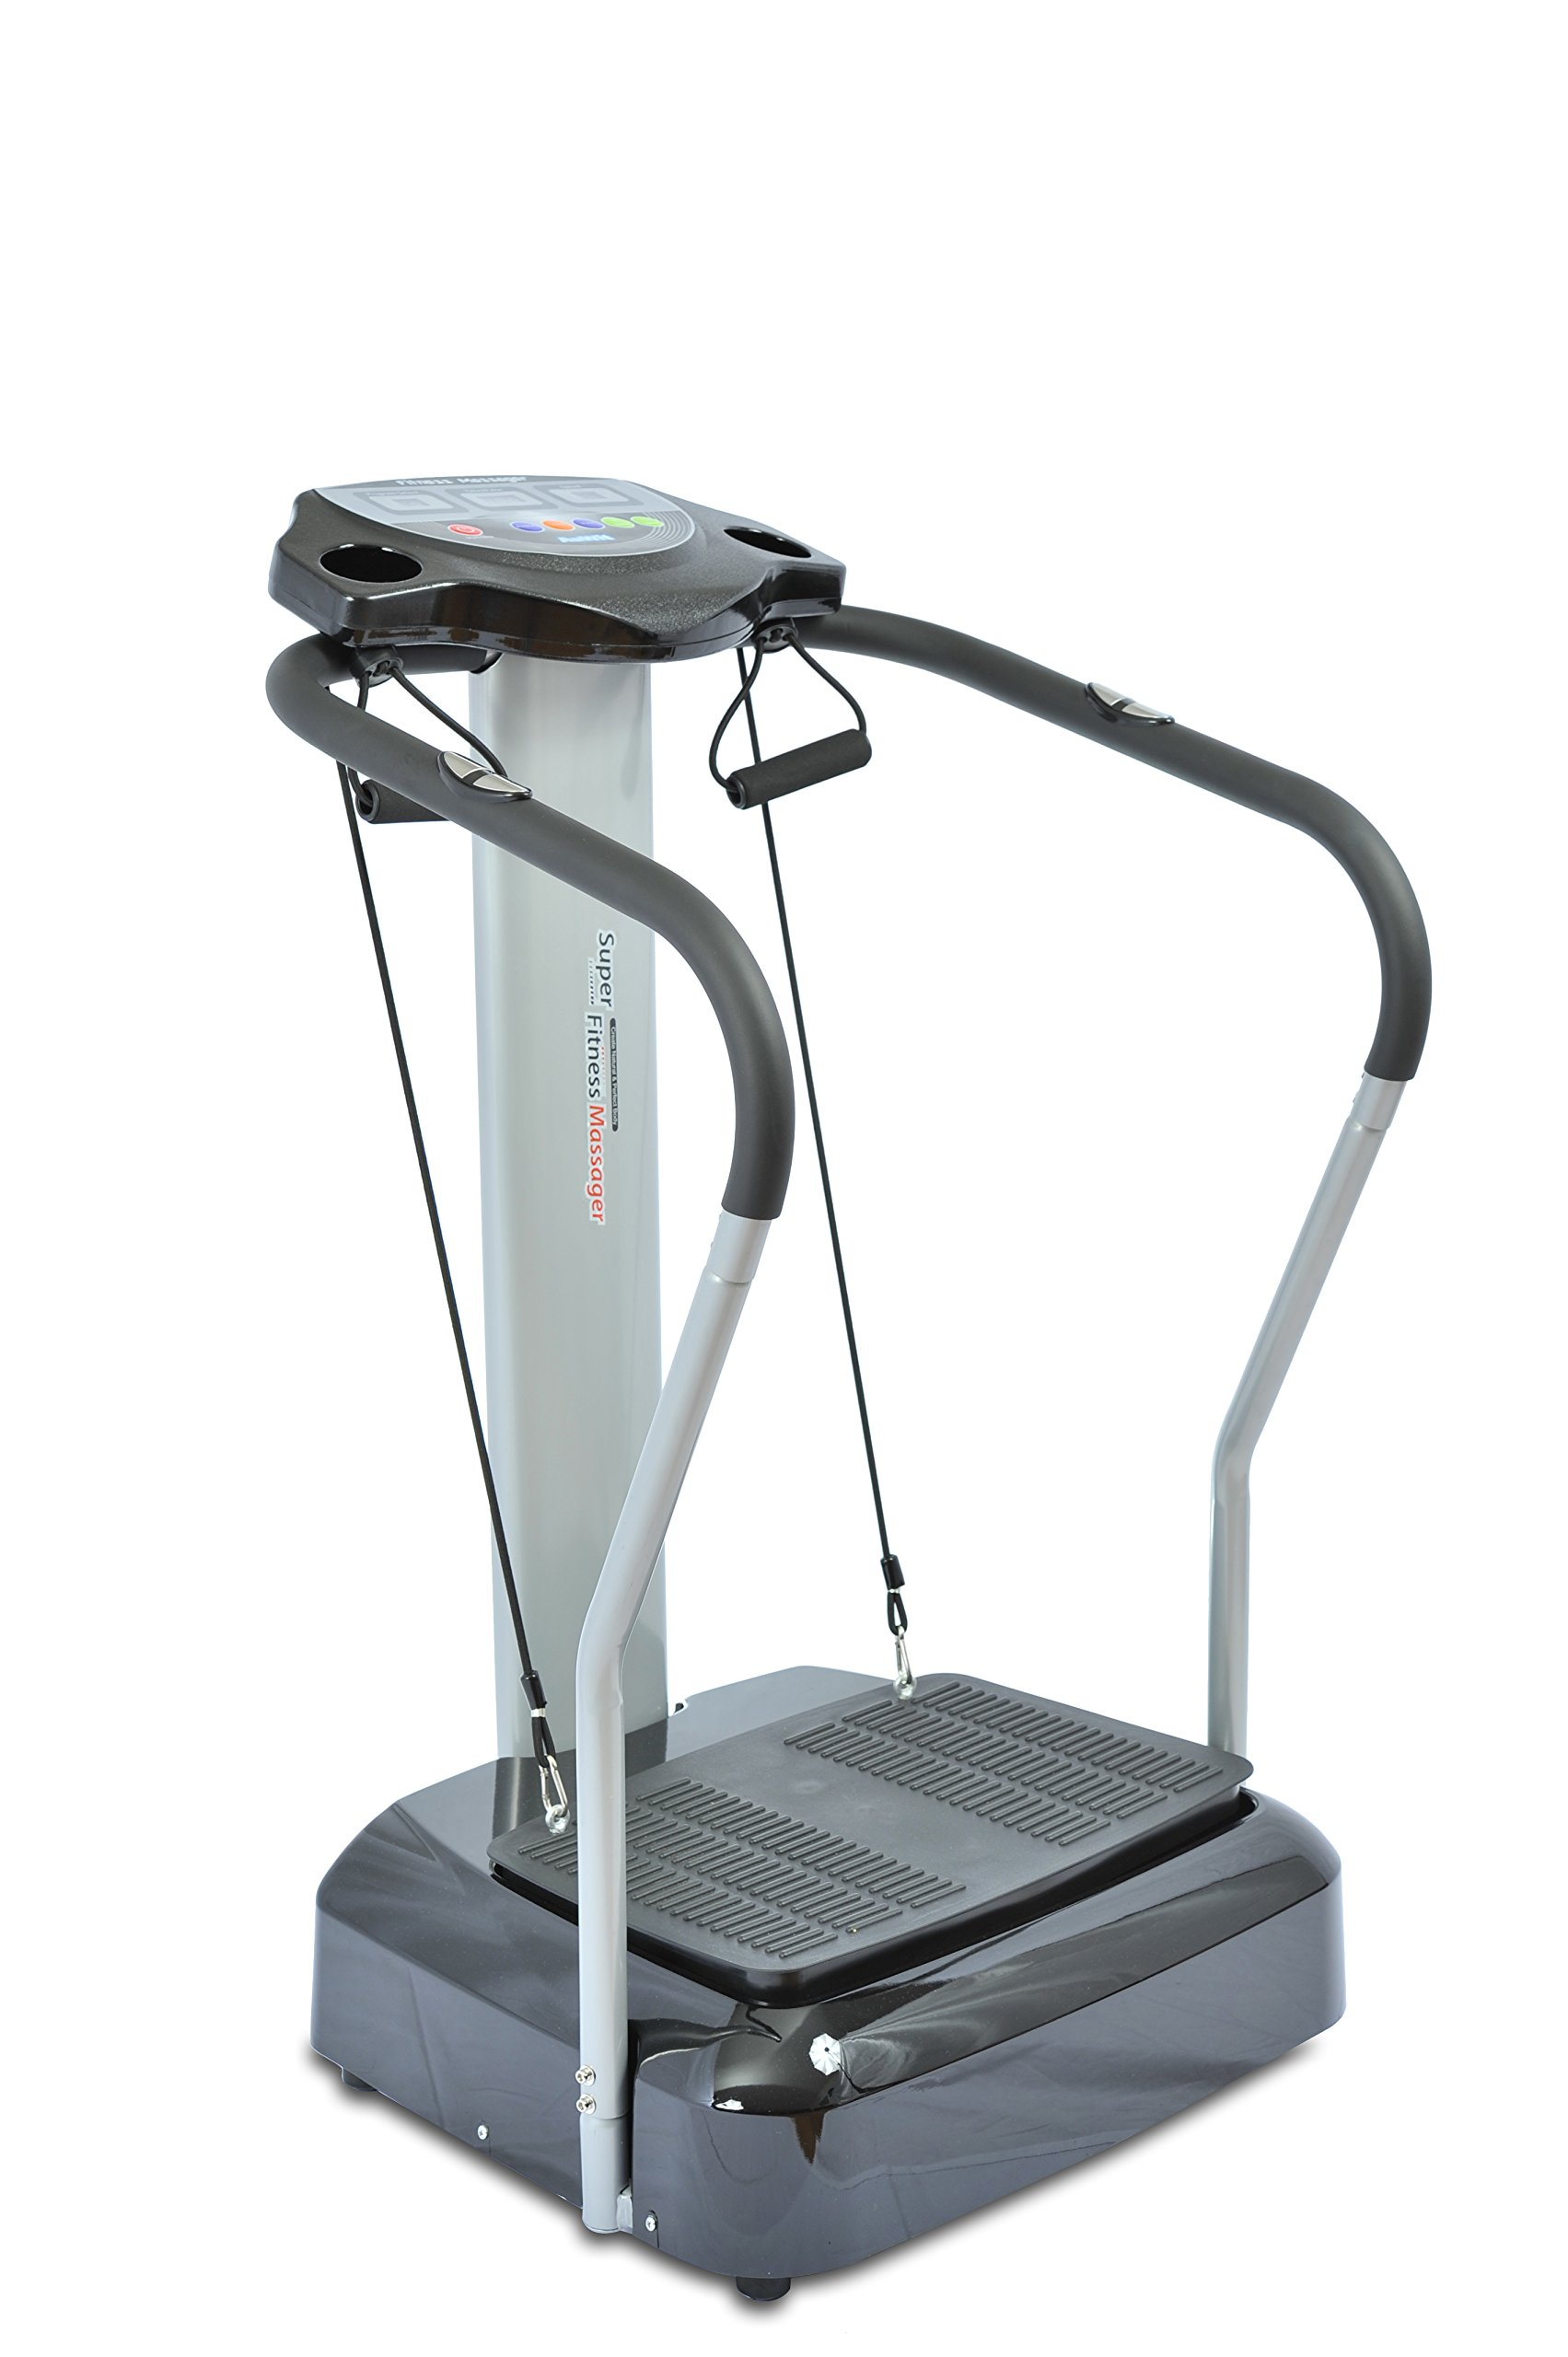 Crazy Fitness Massager with stretch strings 500W vibration platform - AUW-503 - , Hurry - limited time offer (exp. Nov 8, 2014)